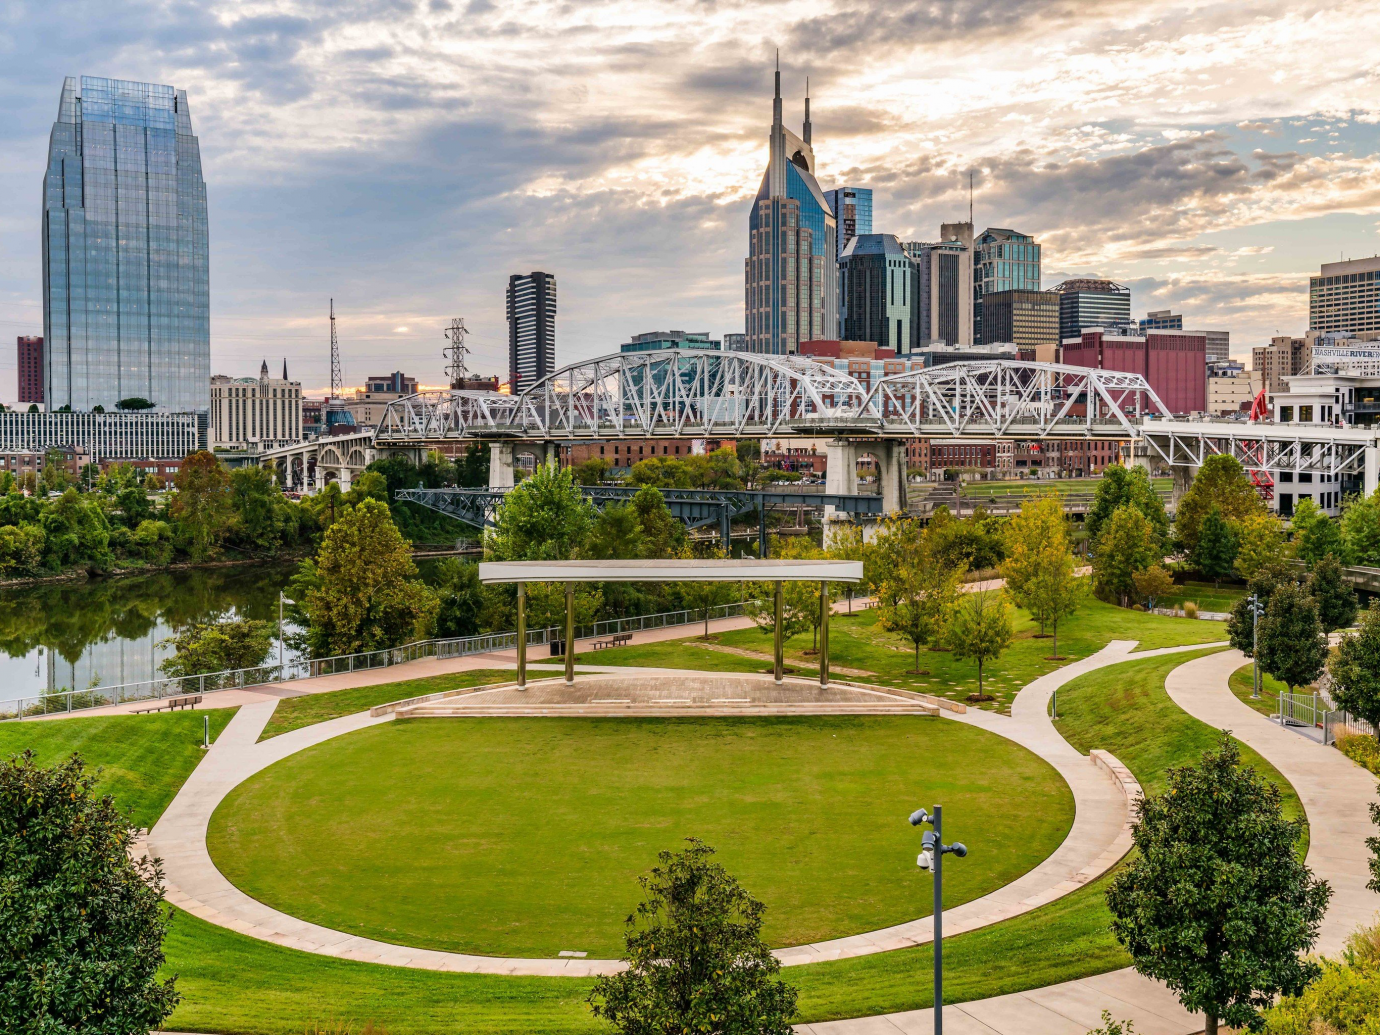 Aerial shot of Nashville in the day time